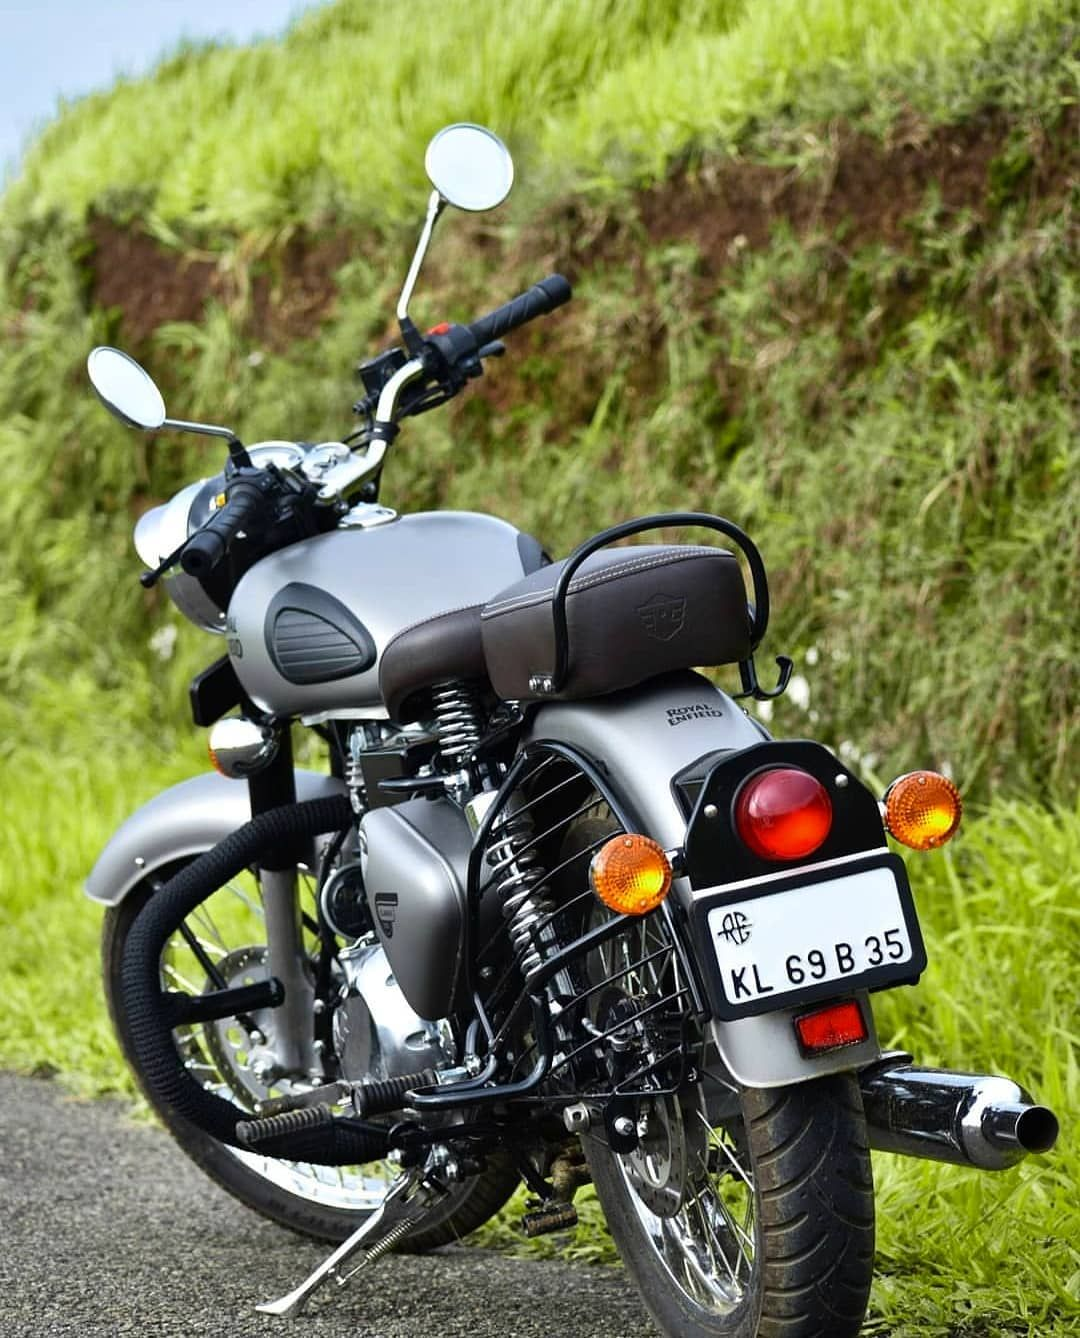 Follow Royal Enfielders For Daily Daily Dose Of Enfield Free Shout Out For Riders With Hd Enfi Classic 350 Royal Enfield Royal Enfield Royal Enfield Bullet